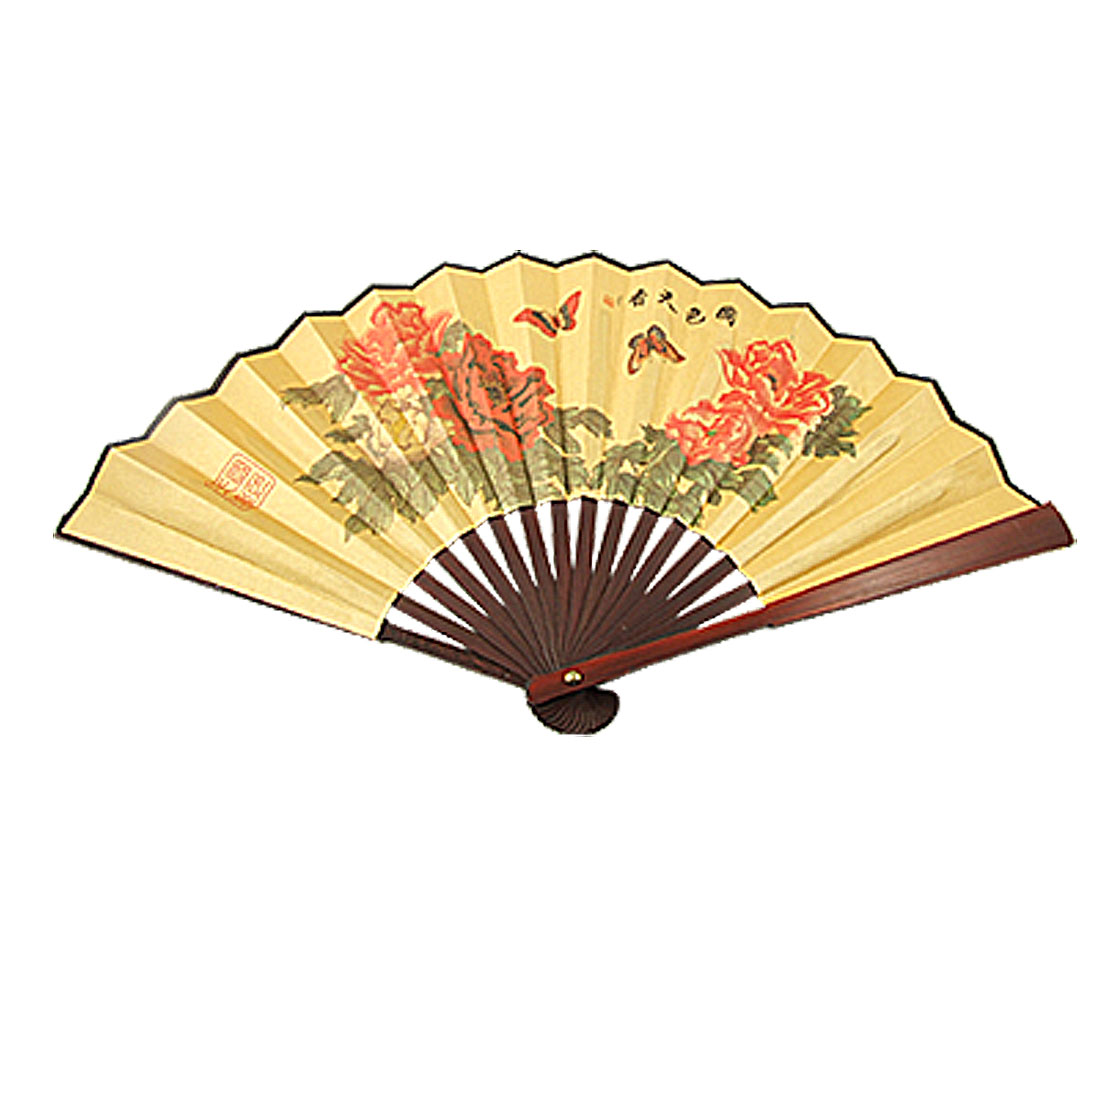 Bamboo Folding Fan Openwork Held Folding Fan Various Style Patterns for Wedding Home Office Decorations Gifts